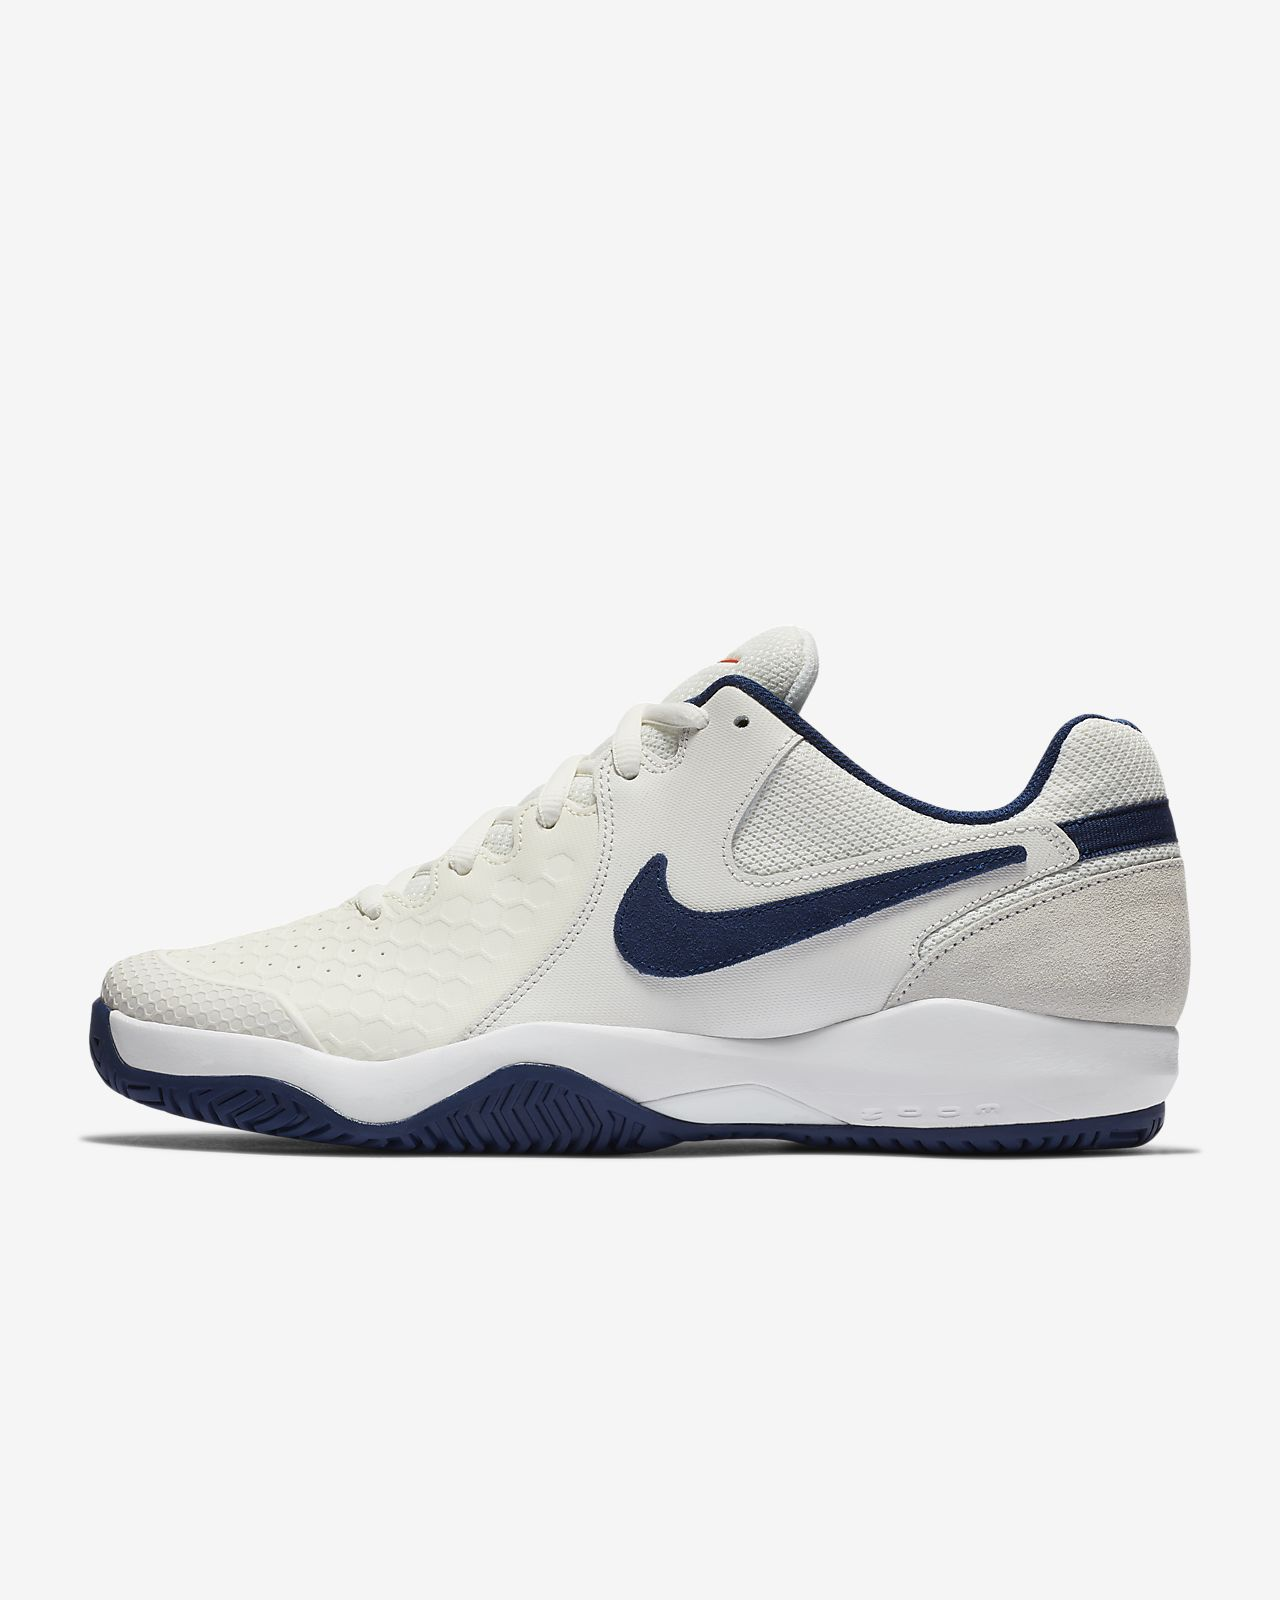 2805b2bac6070 NikeCourt Air Zoom Resistance Men s Hard Court Tennis Shoe. Nike.com PT